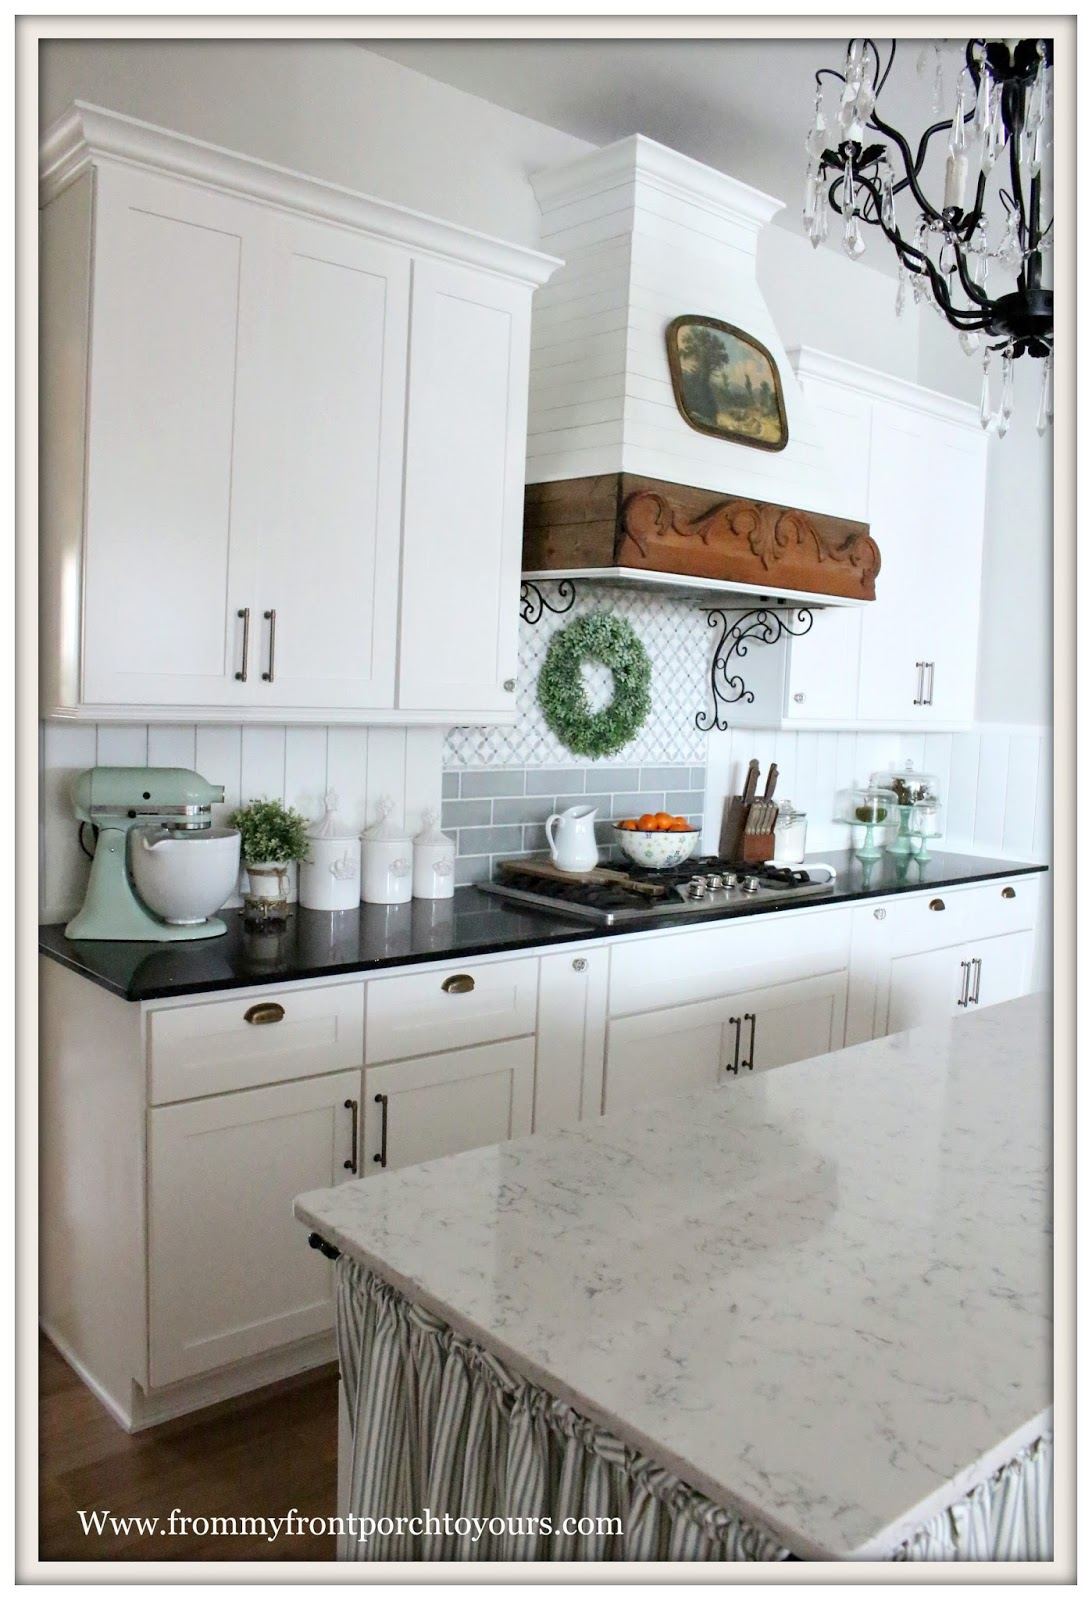 Farmhouse Country Kitchen Designs: From My Front Porch To Yours: Simple Winter French Country